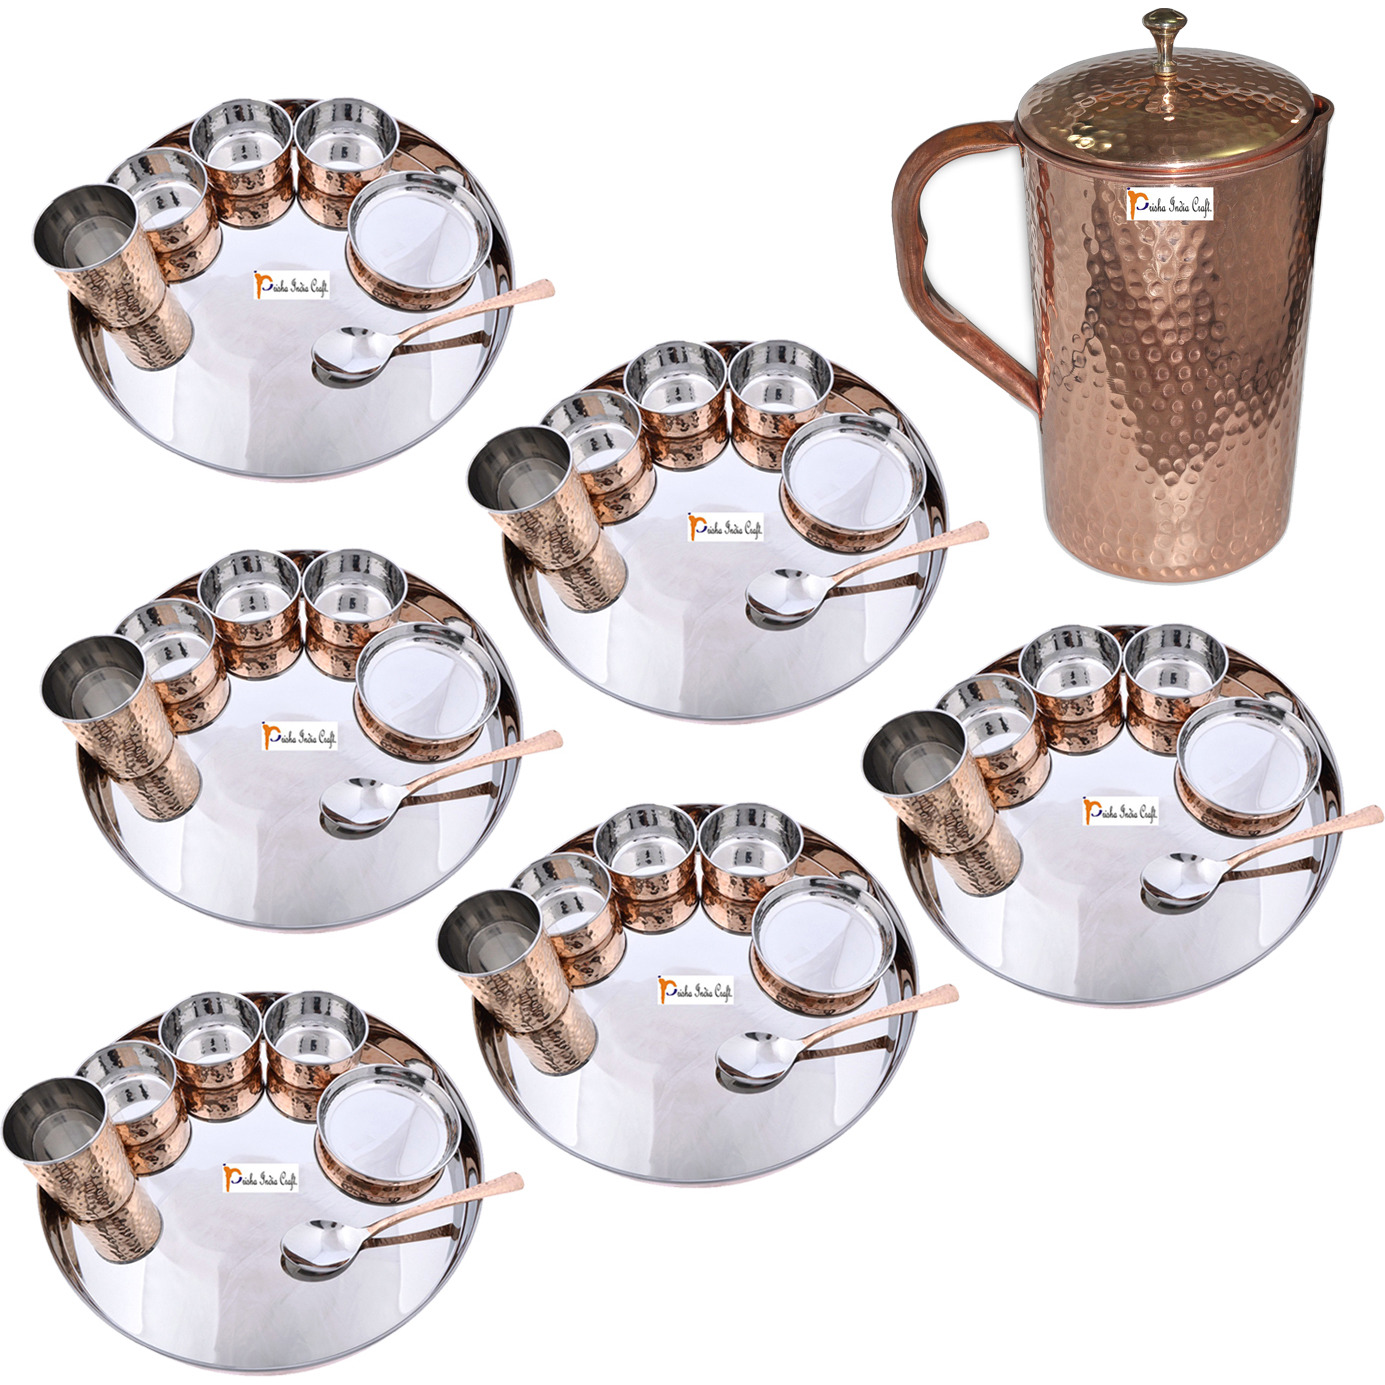 Prisha India Craft B. Set of 6 Dinnerware Traditional Stainless Steel Copper Dinner Set of Thali Plate, Bowls, Glass and Spoon, Dia 13  With 1 Pure Copper Hammered Pitcher Jug - Christmas Gift